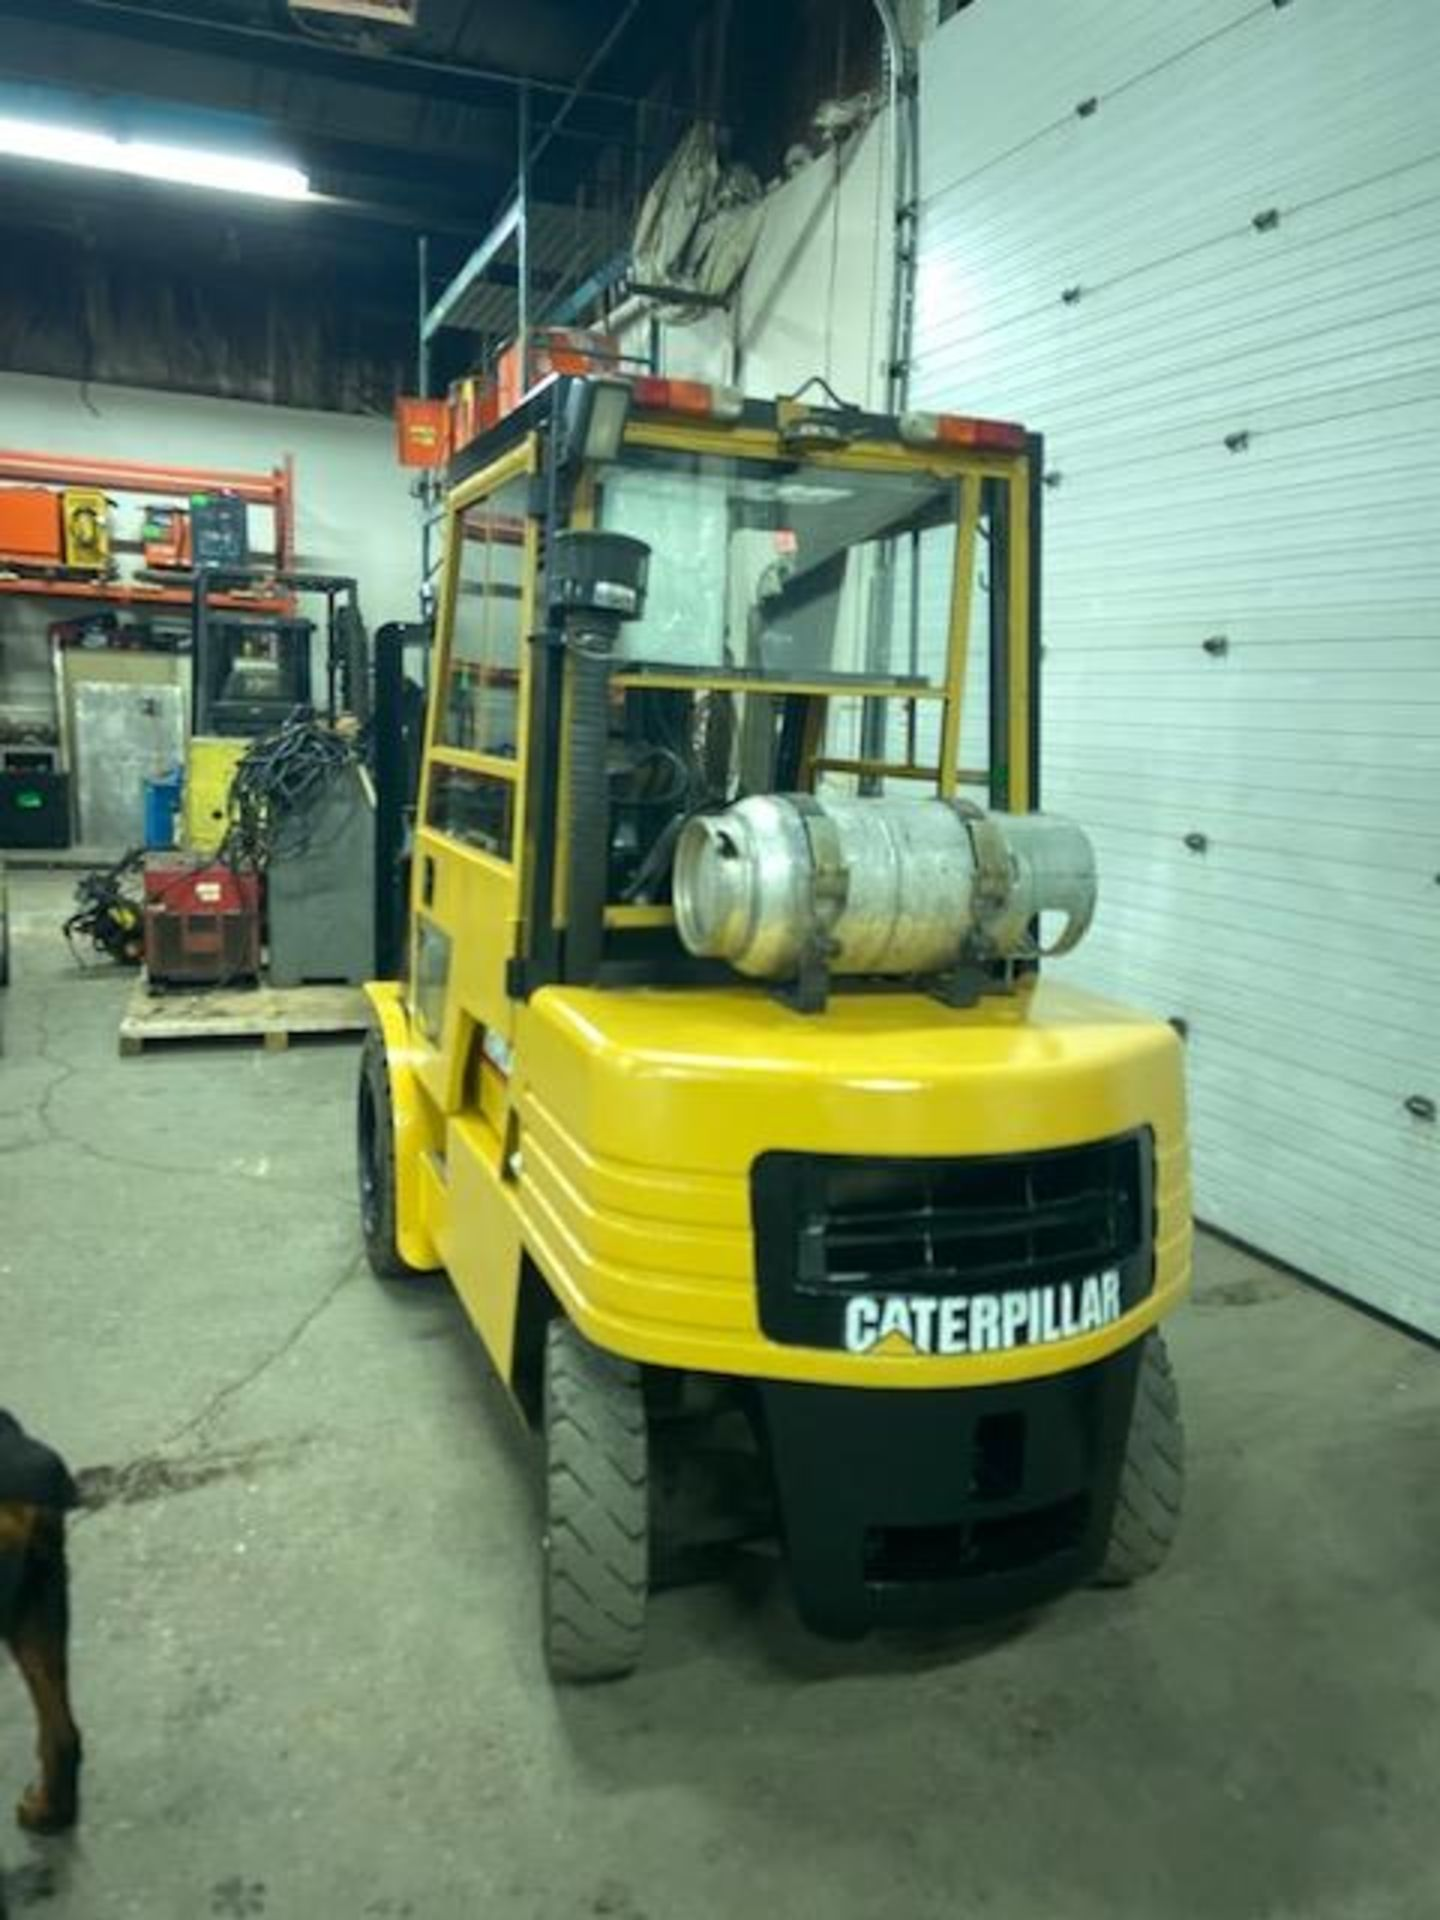 FREE CUSTOMS - CAT 6000lbs OUTDOOR Capacity Forklift LPG (propane) with 3-stage mast and - Image 3 of 3